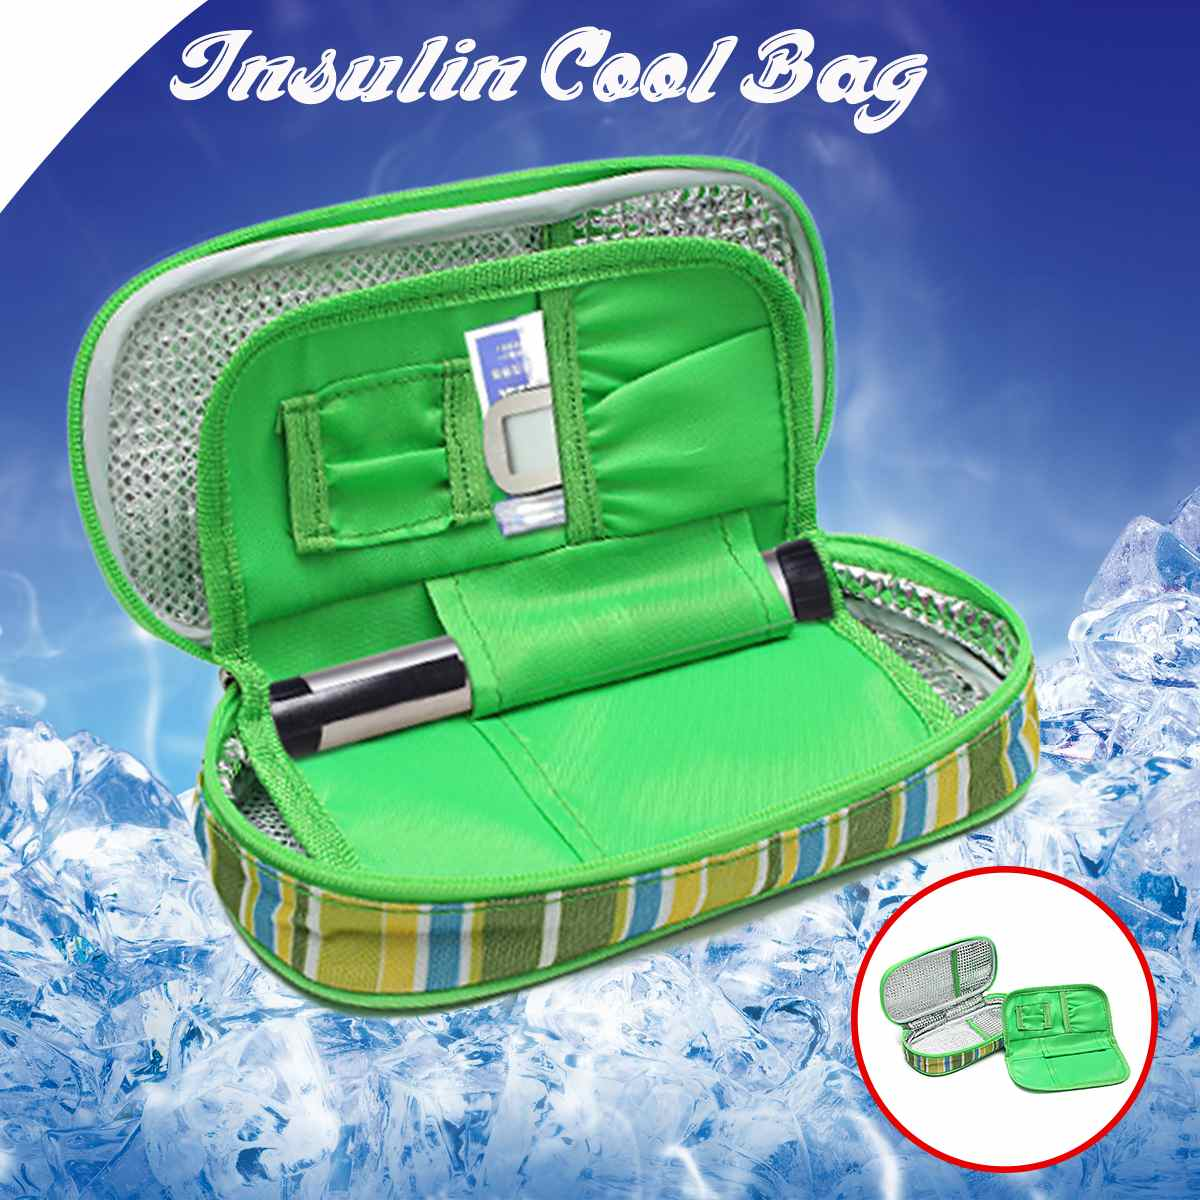 Portable Medicine Diabetic Insulin Cooling Pouch 2-Layer  Cooler Ice Pack Bag Travel Case  Ice Pack Thermal Cooler Bag Refrigera